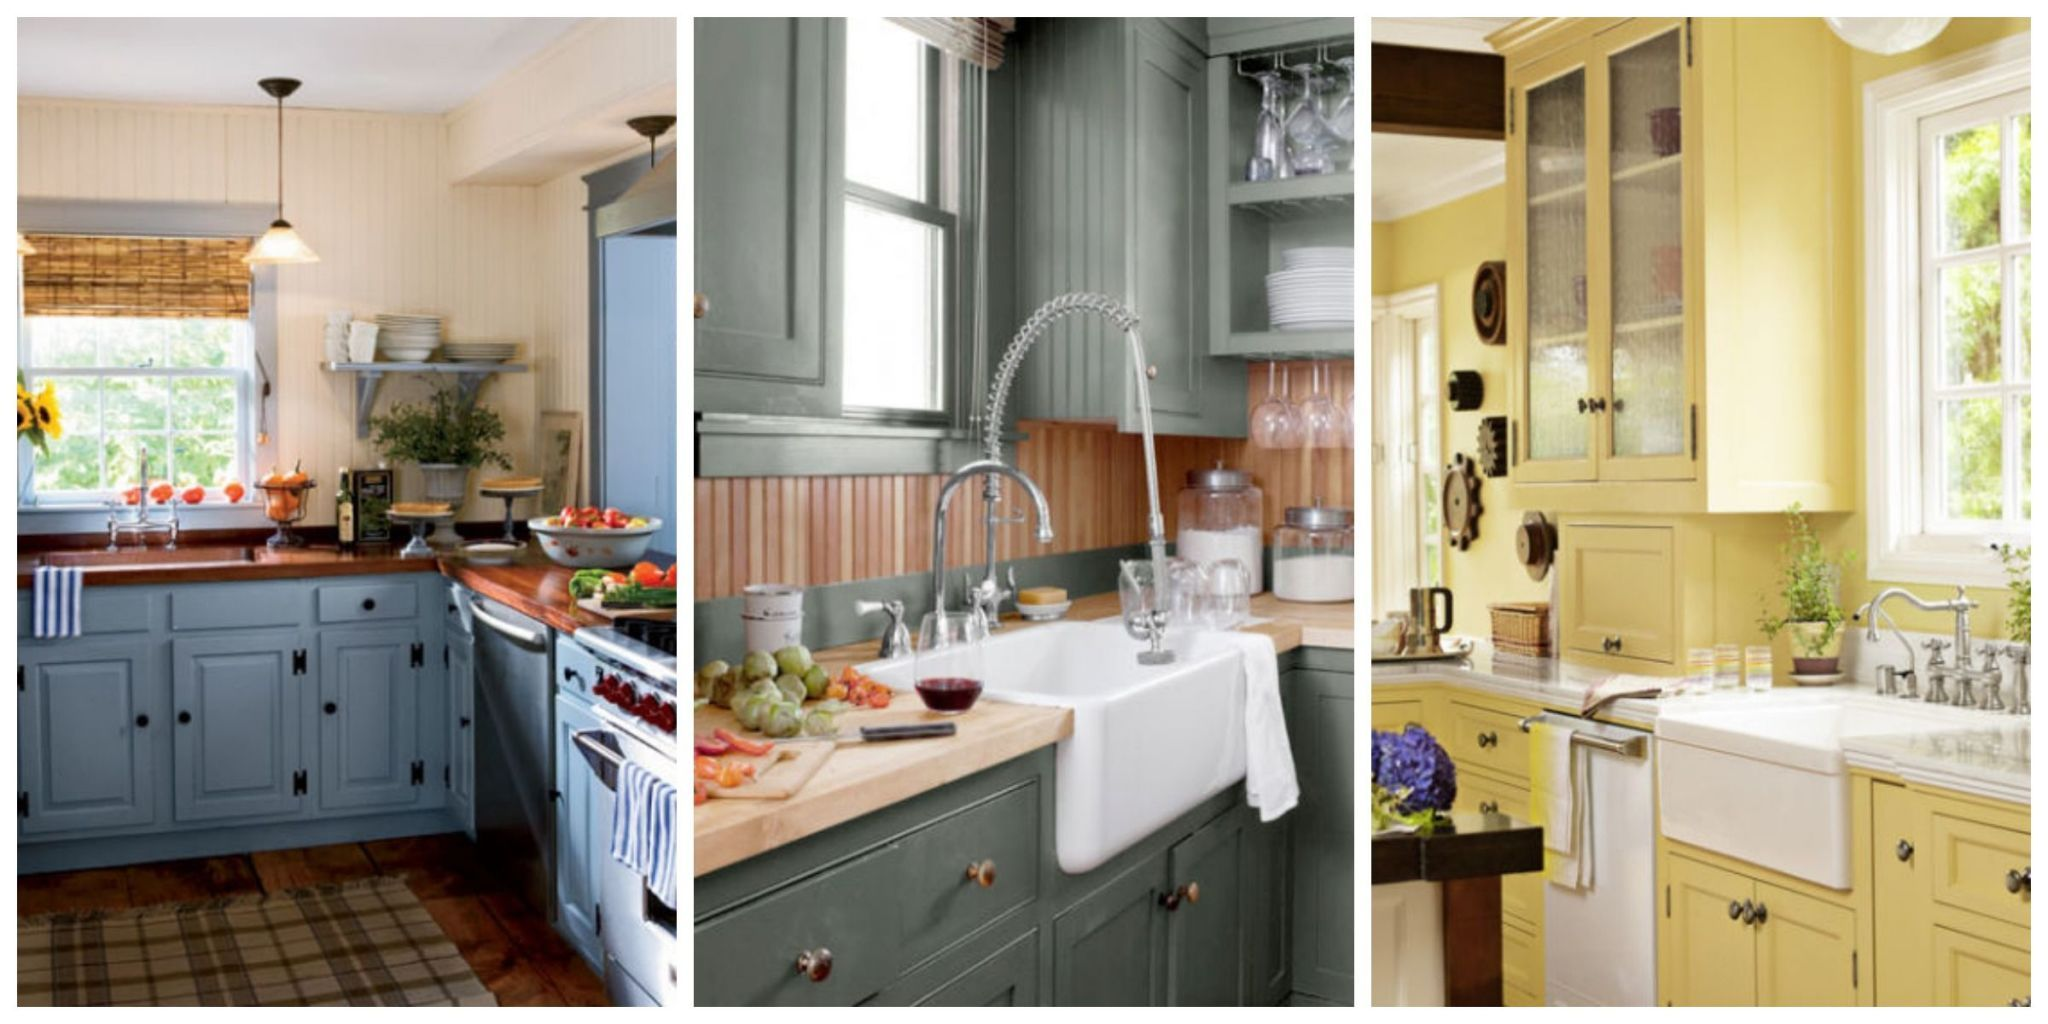 Exceptional Create A Beautiful And Colorful Kitchen With These Paint And Decorating  Ideas. Also, Check Out These 100+ Kitchen Design Ideas For More Inspiration.